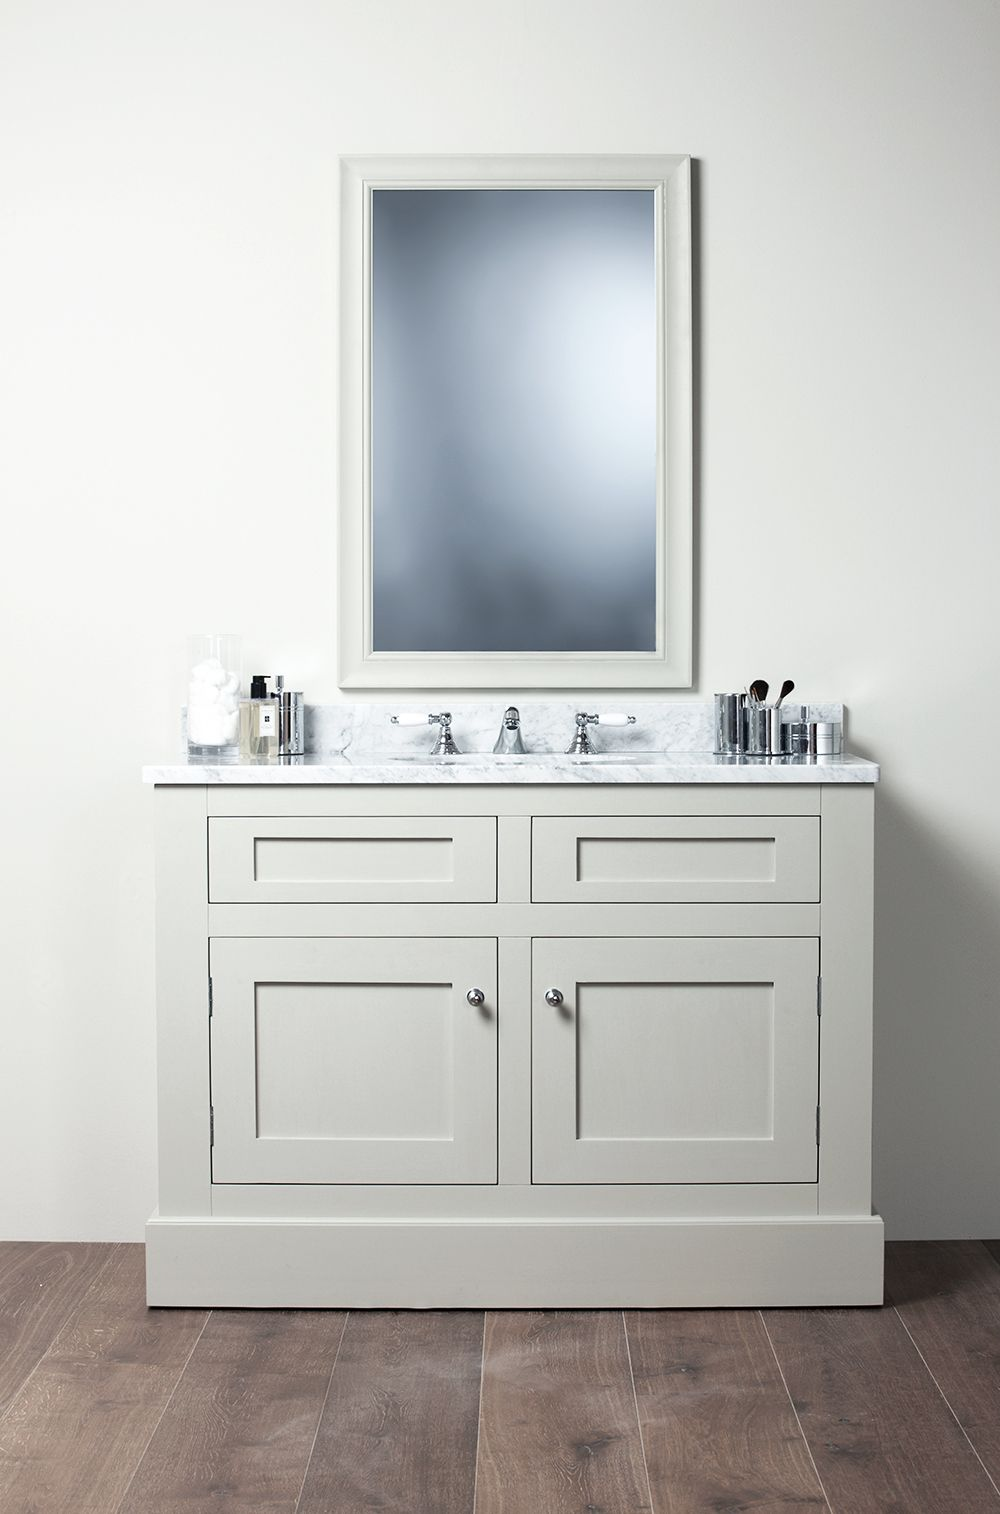 Shaker Style Bathroom Vanity Don T Despair In 2019 Bathroom Vanity Units Bathroom Styling